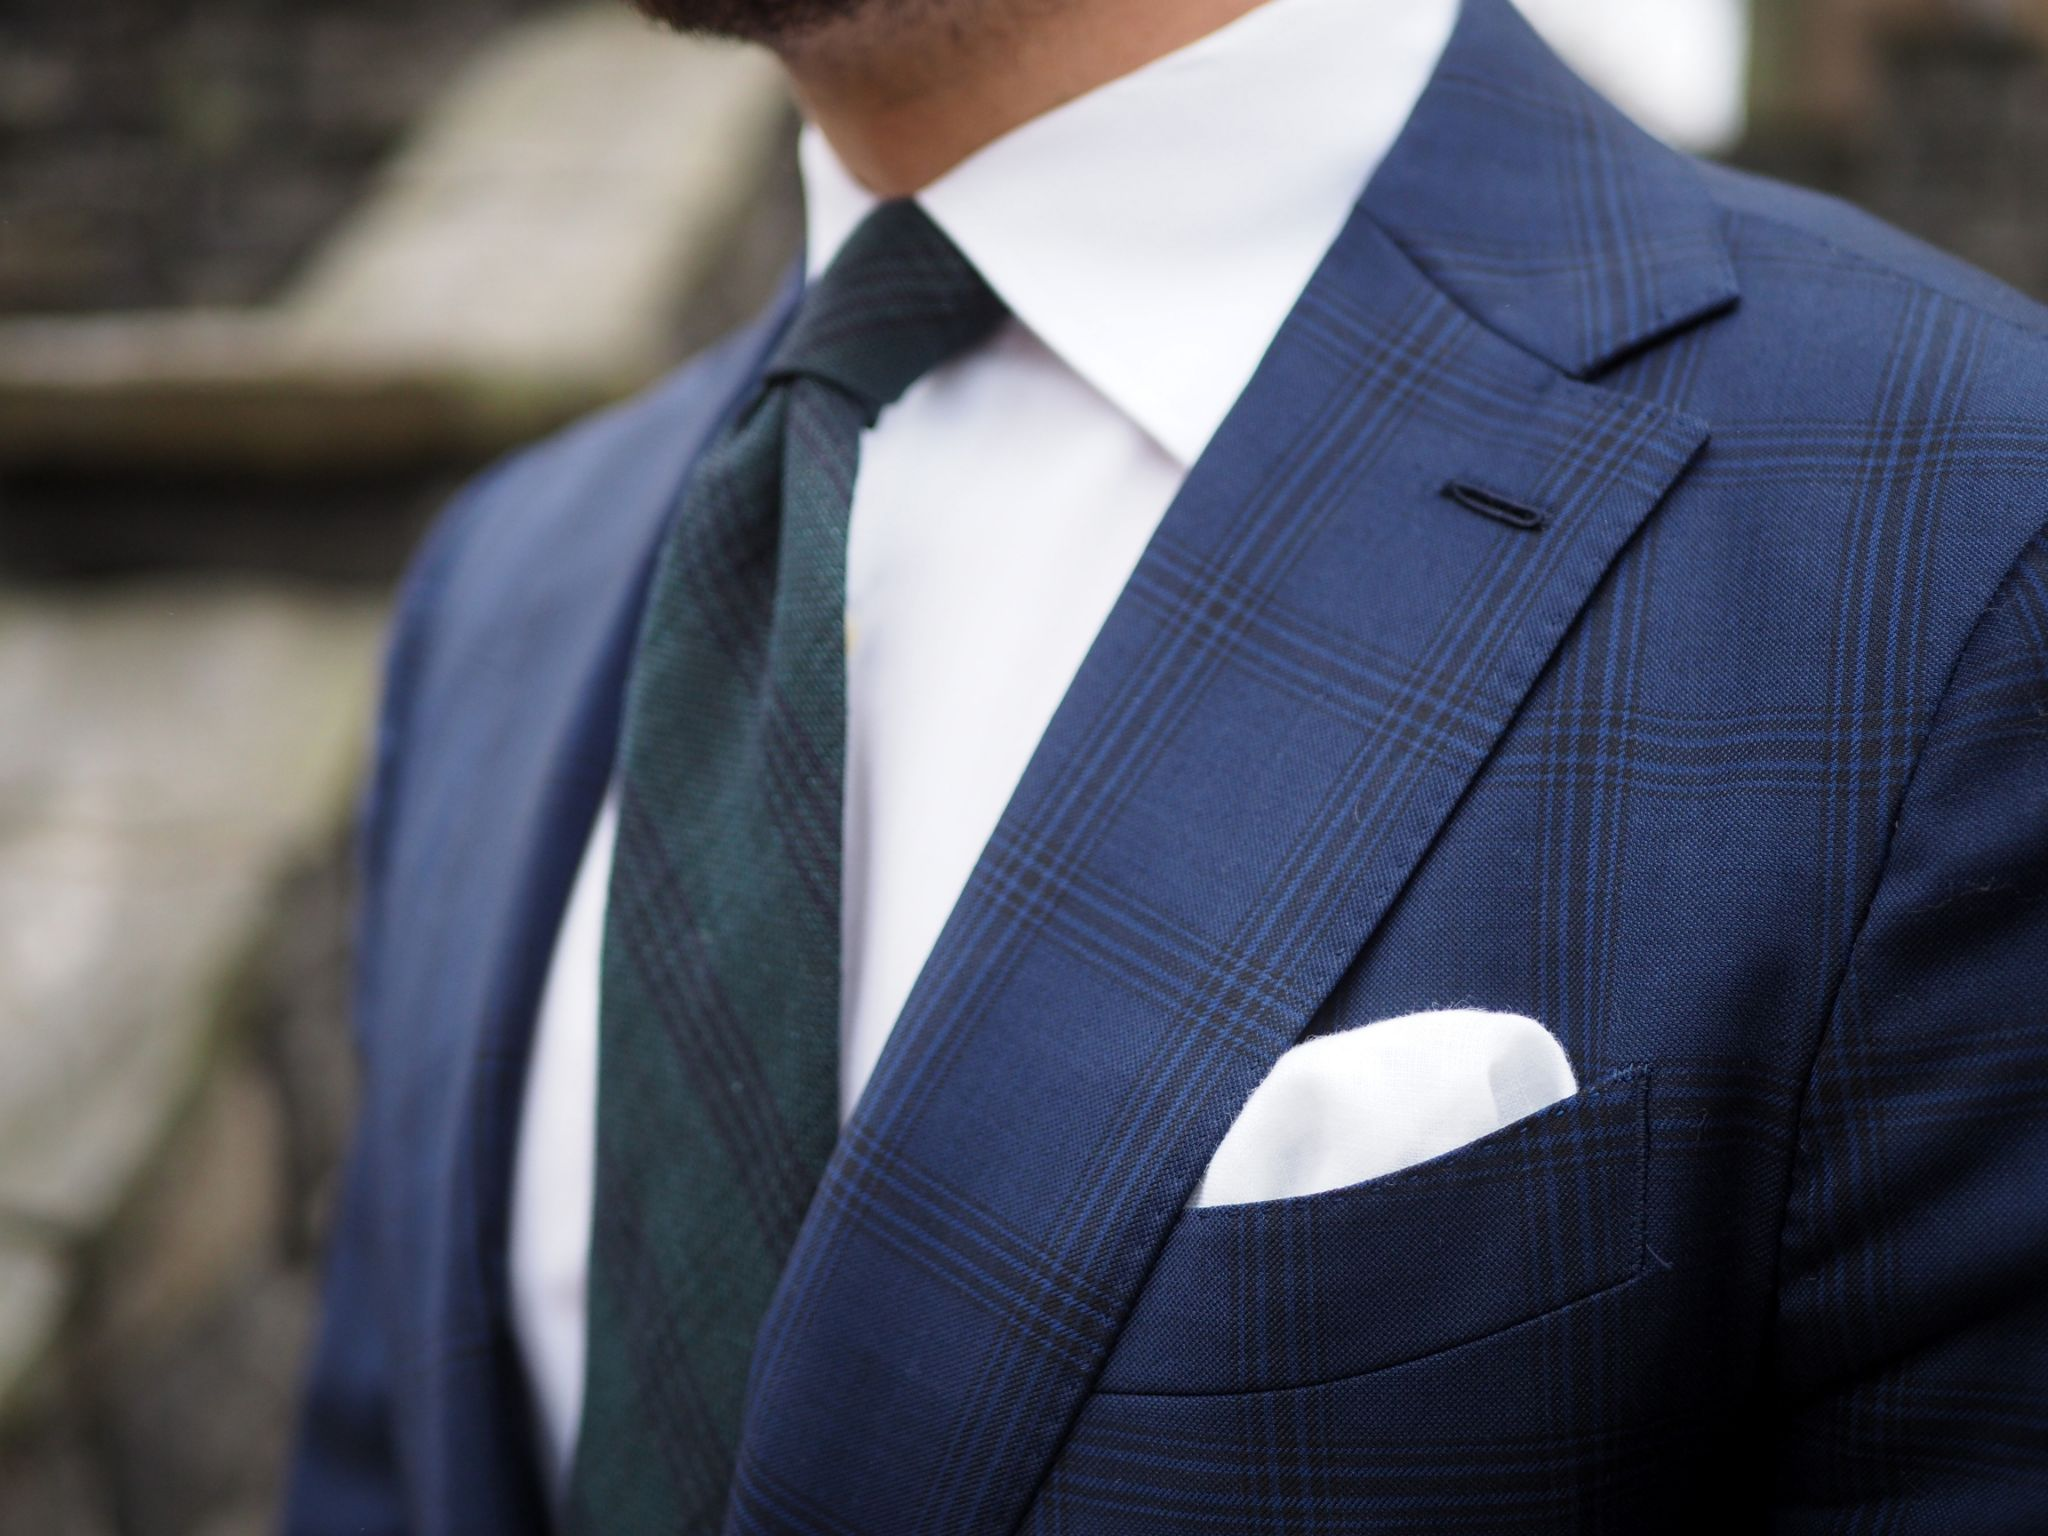 Bottle green tie for business wear - details of the tie and suit